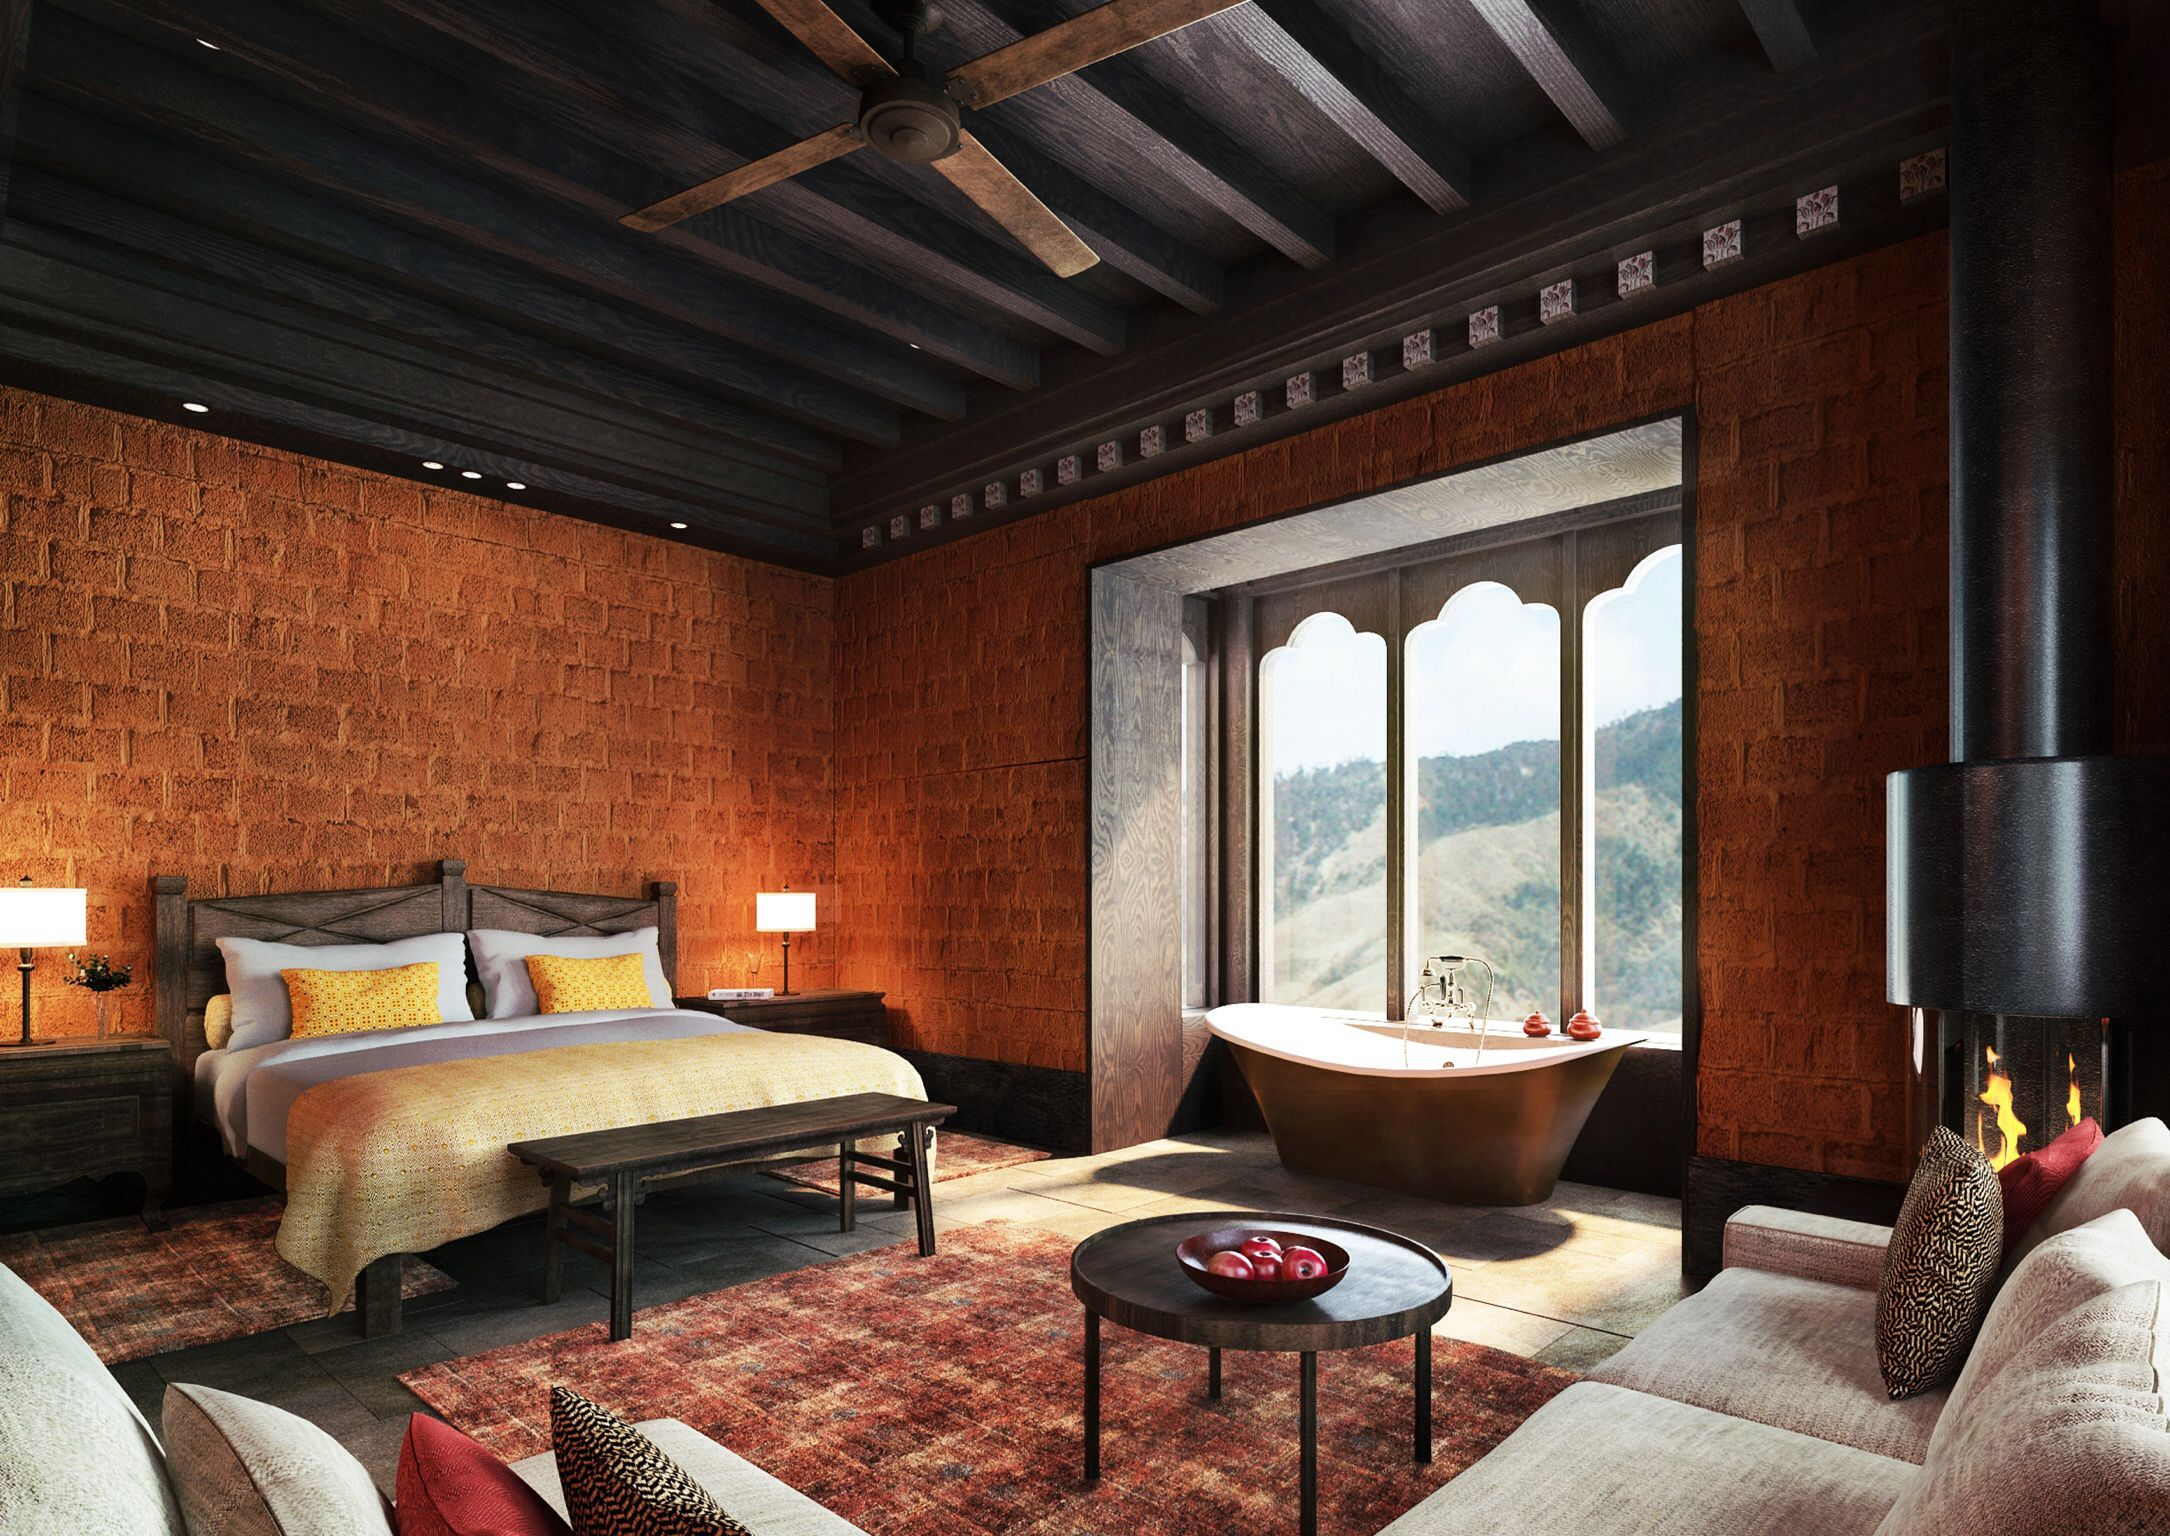 The Best Claw Foot Bathtub In All Of Bhutan At Gangtey Goenpa Lodge Boutique Hotels Interiors Hotel Architecture Bhutan